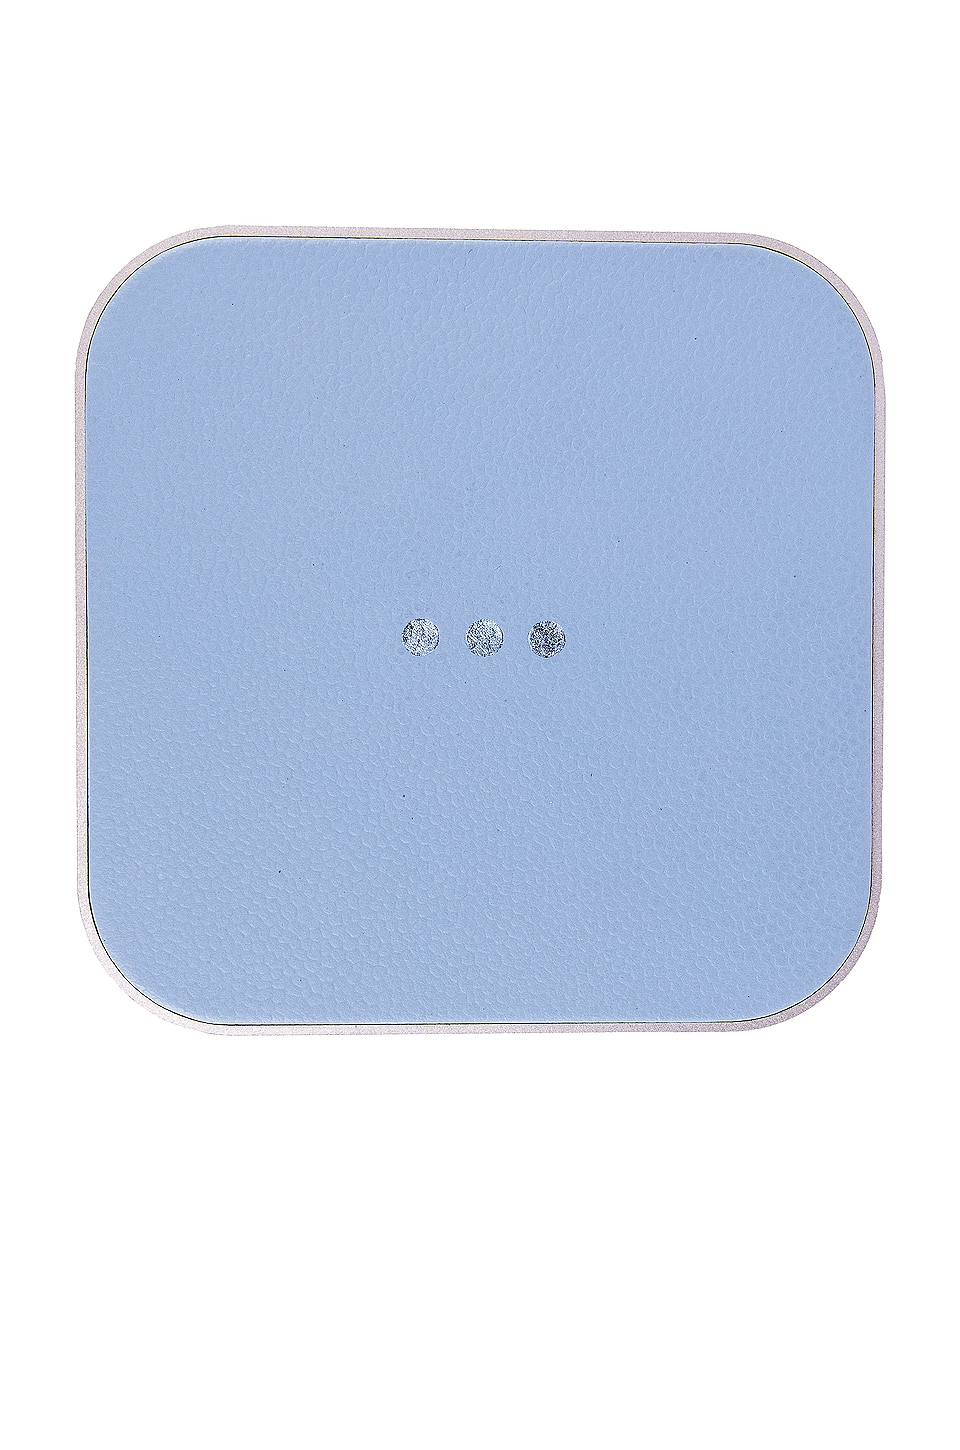 Courant Catch:1 Wireless Charger in Pacific Blue